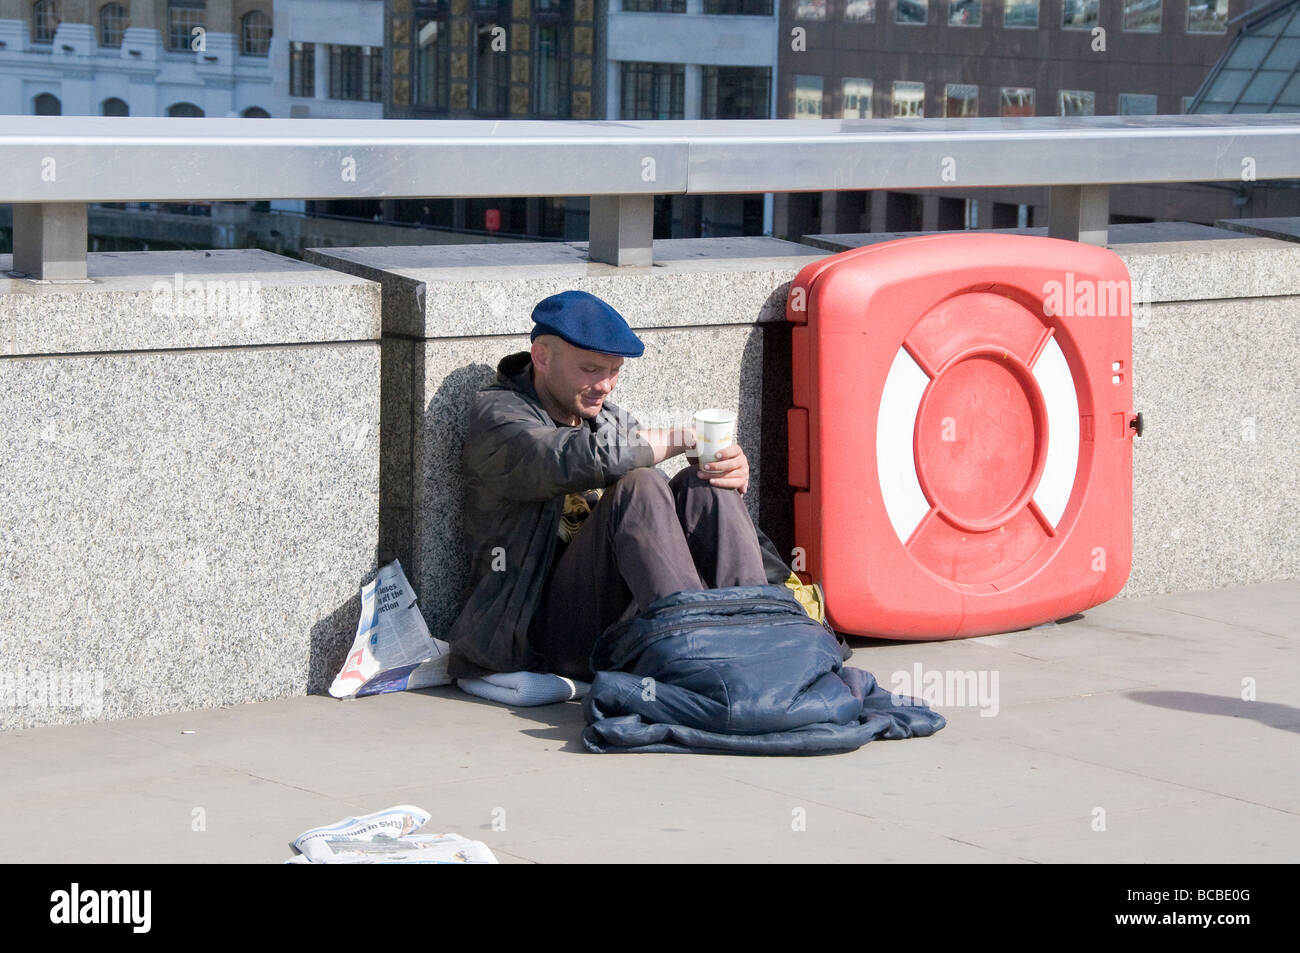 A homeless person on London Bridge in London. - Stock Image